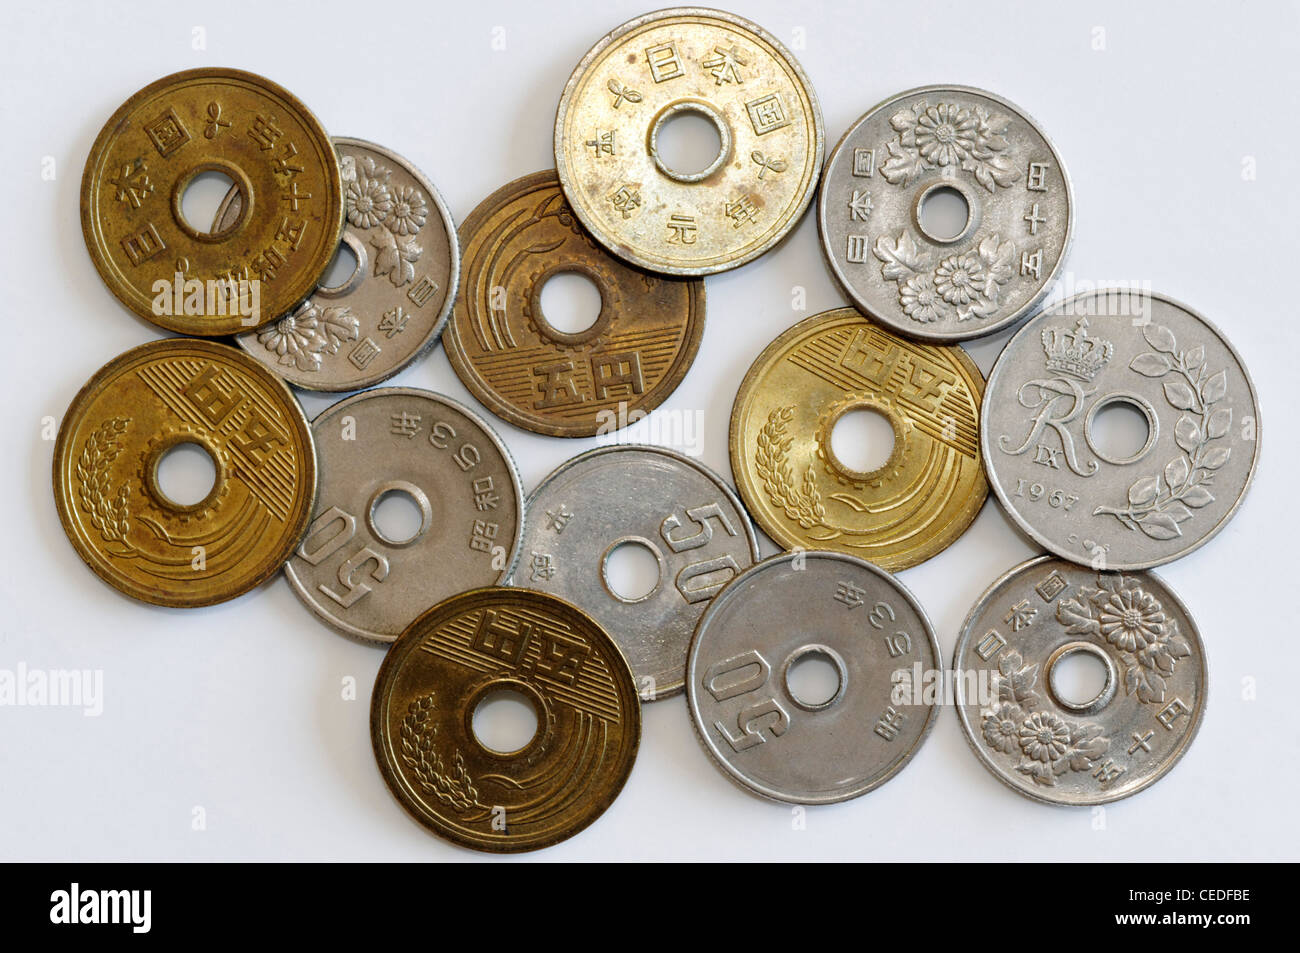 Coins with a hole in the middle Stock Photo: 43323378 - Alamy